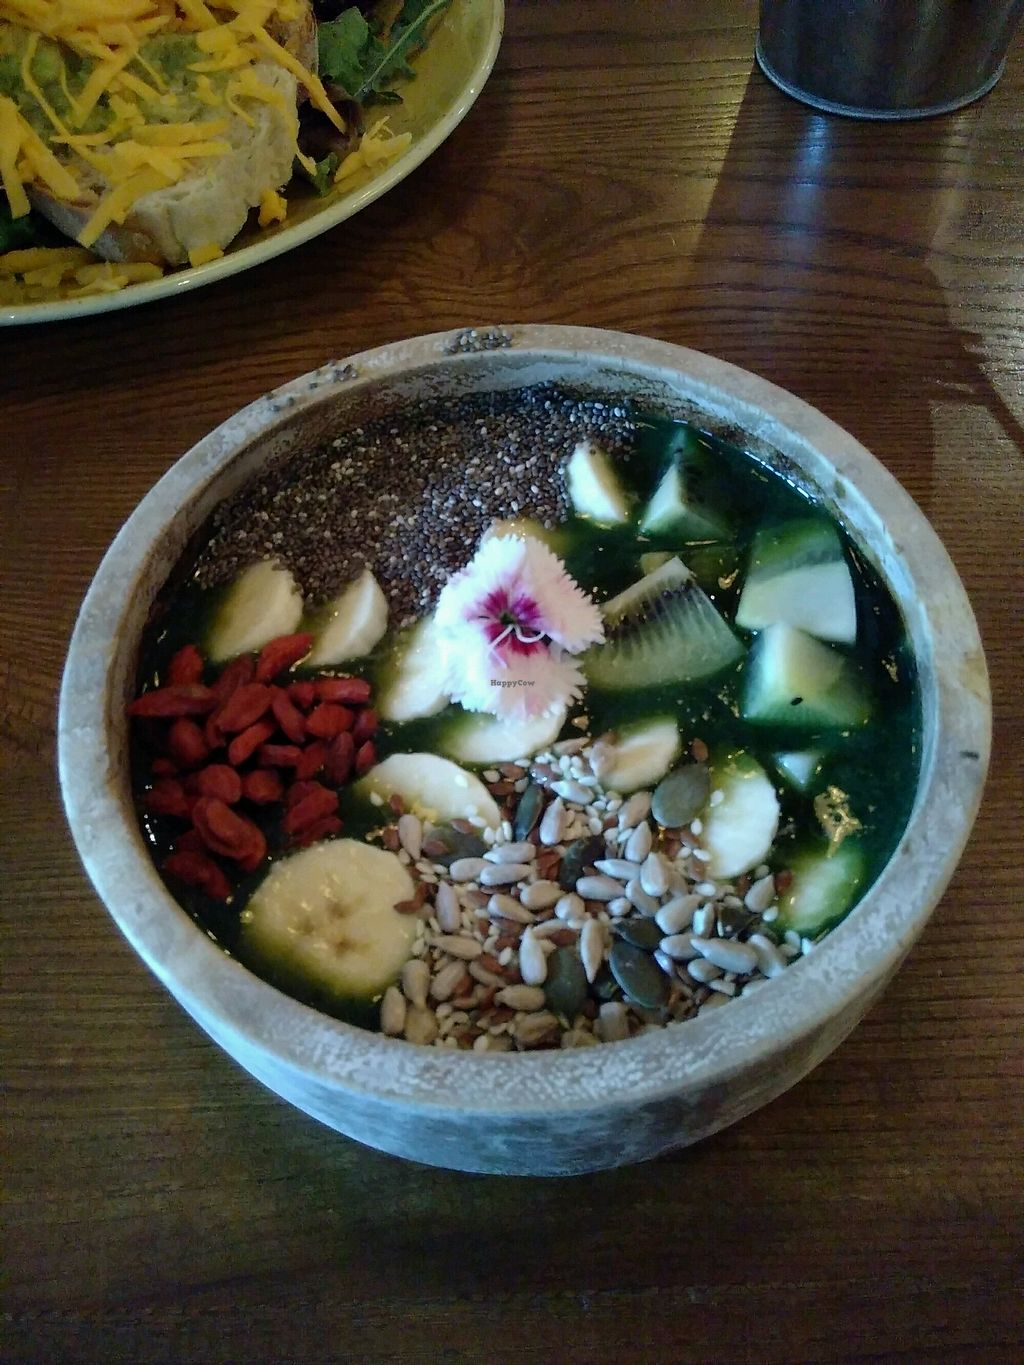 """Photo of Zenith  by <a href=""""/members/profile/ManonB"""">ManonB</a> <br/>Vegan bowl <br/> February 19, 2018  - <a href='/contact/abuse/image/98408/361271'>Report</a>"""